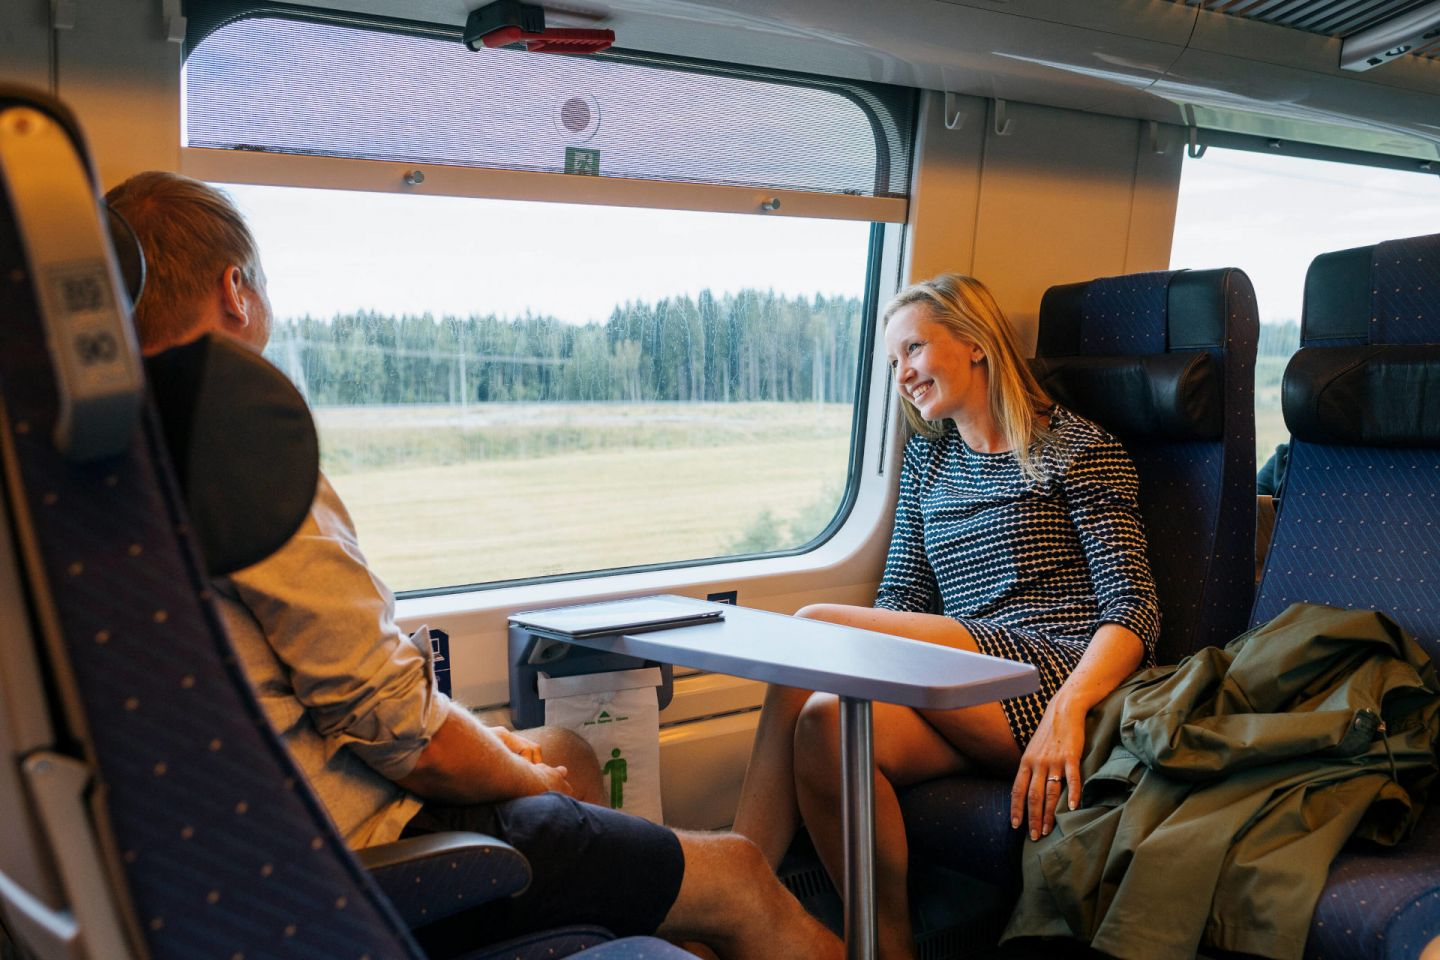 Enjoying the train ride to Lapland, Finland